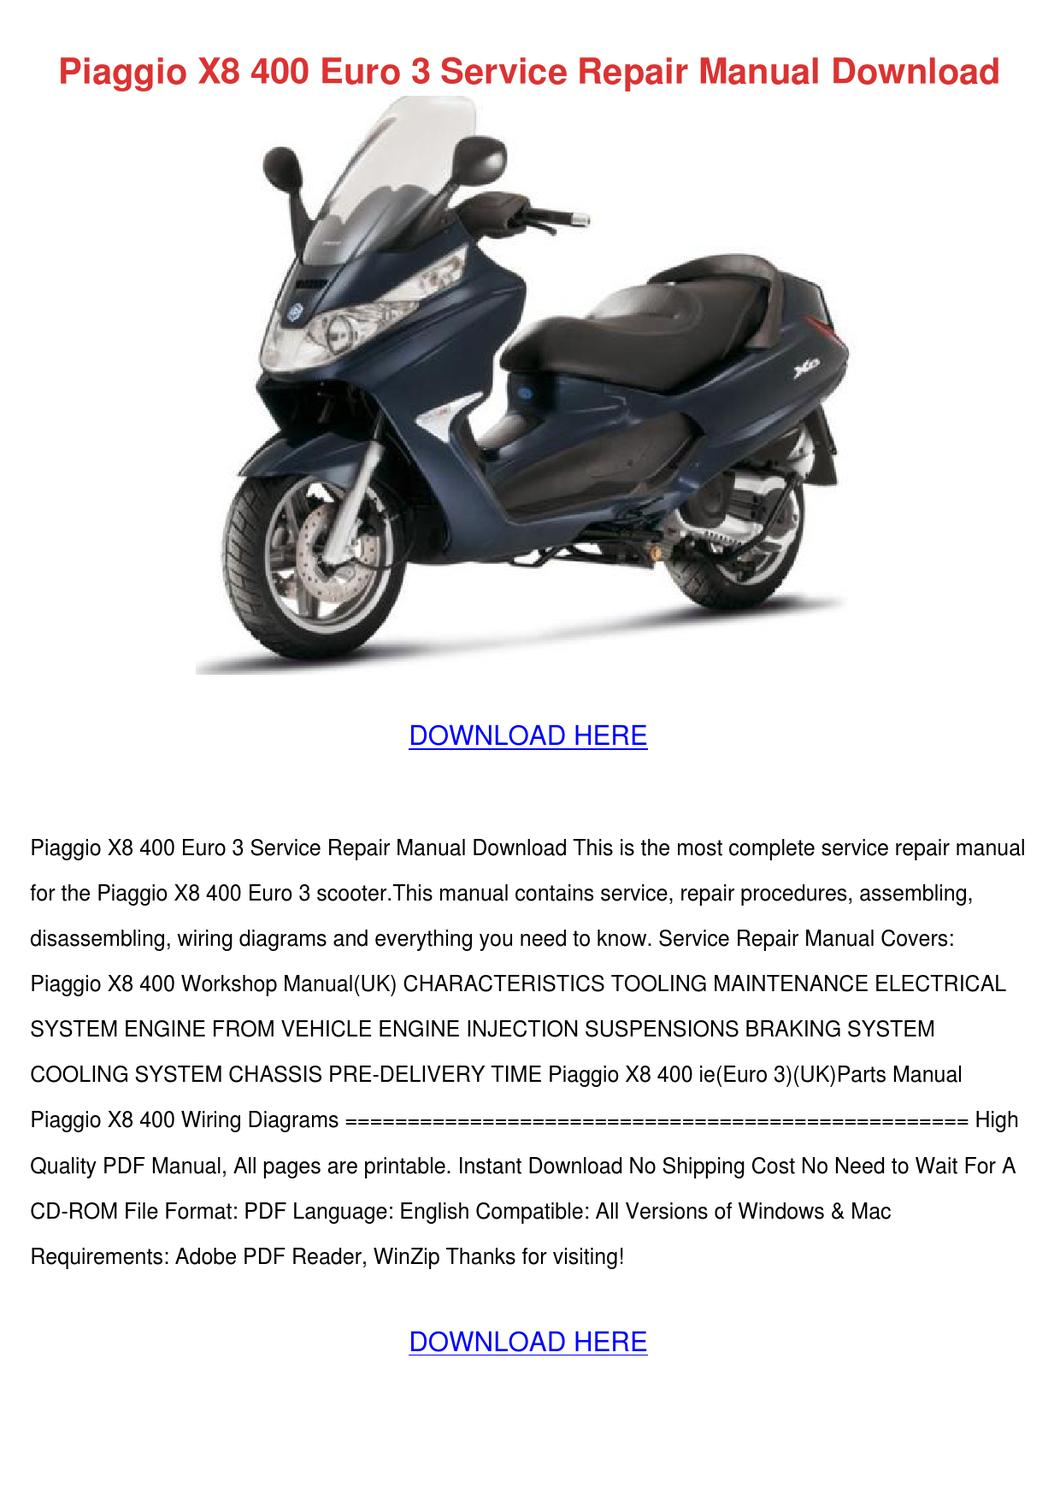 Piaggio X8 400 Euro 3 Service Repair Manual D by MaryellenMarlowe - issuu